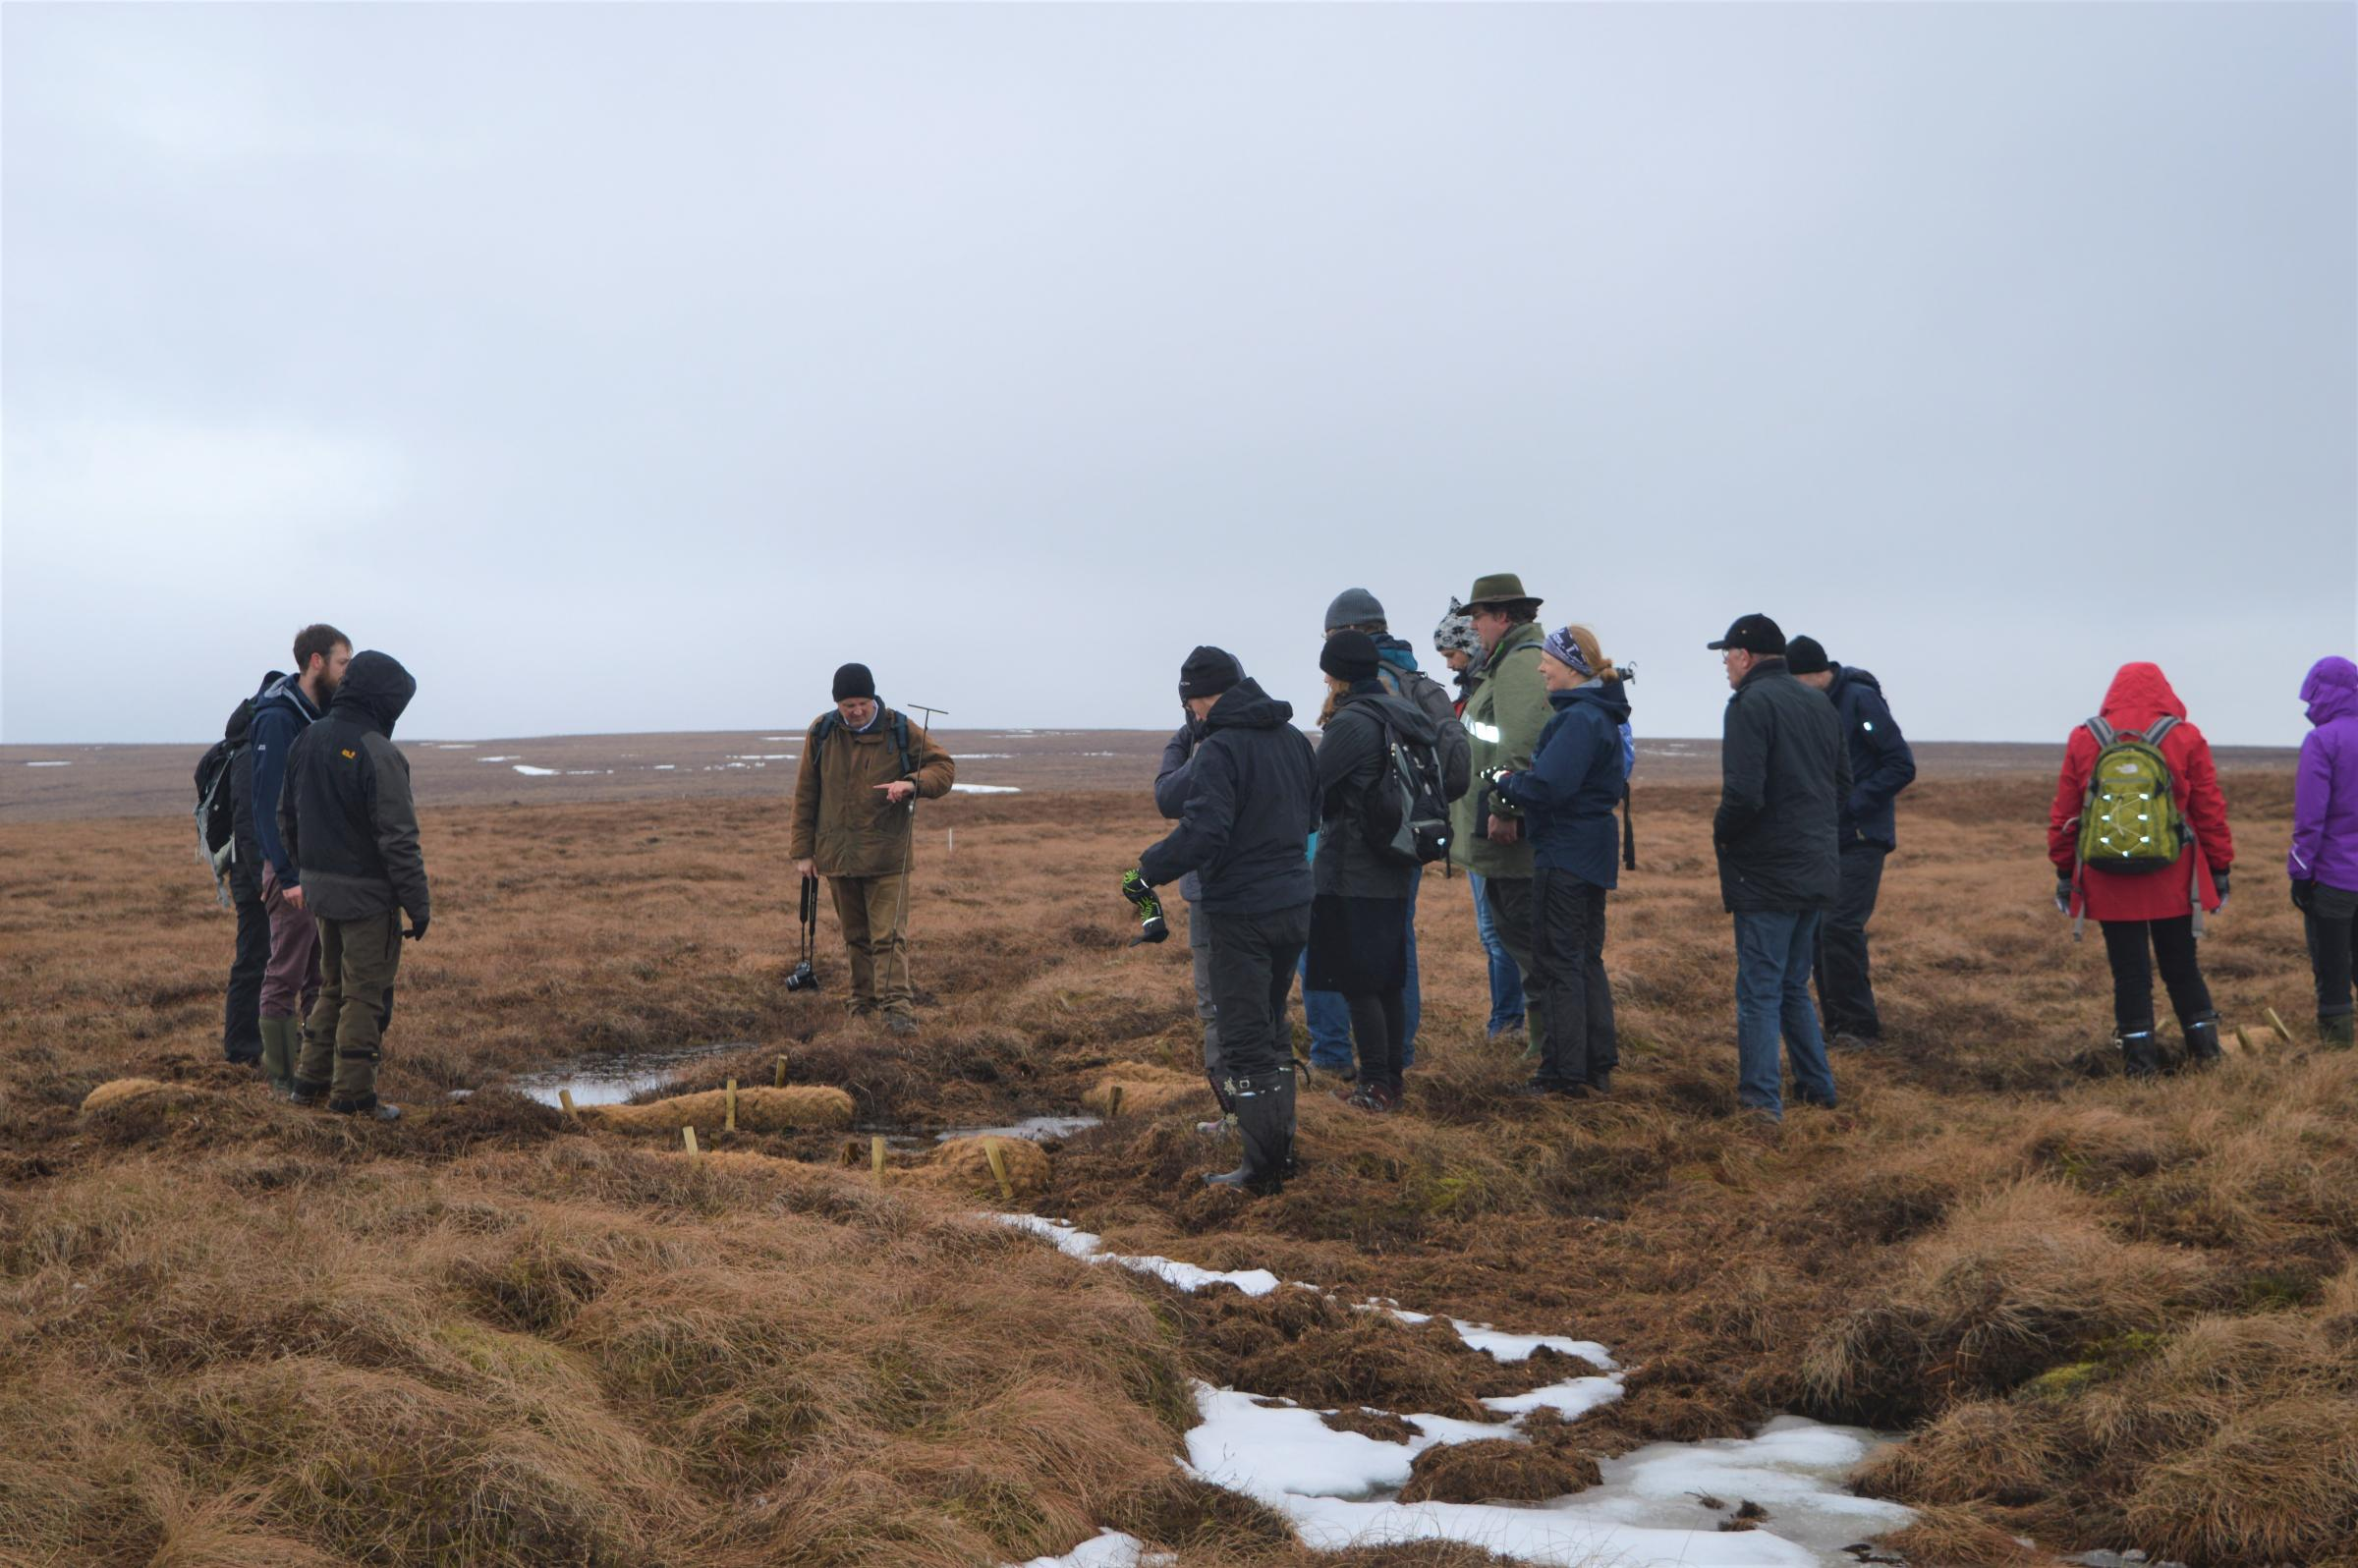 Paul Leadbitter, peatland programme manager for the North Pennines AONB Partnership, demonstrates restoration techniques to international visitors in 2018.